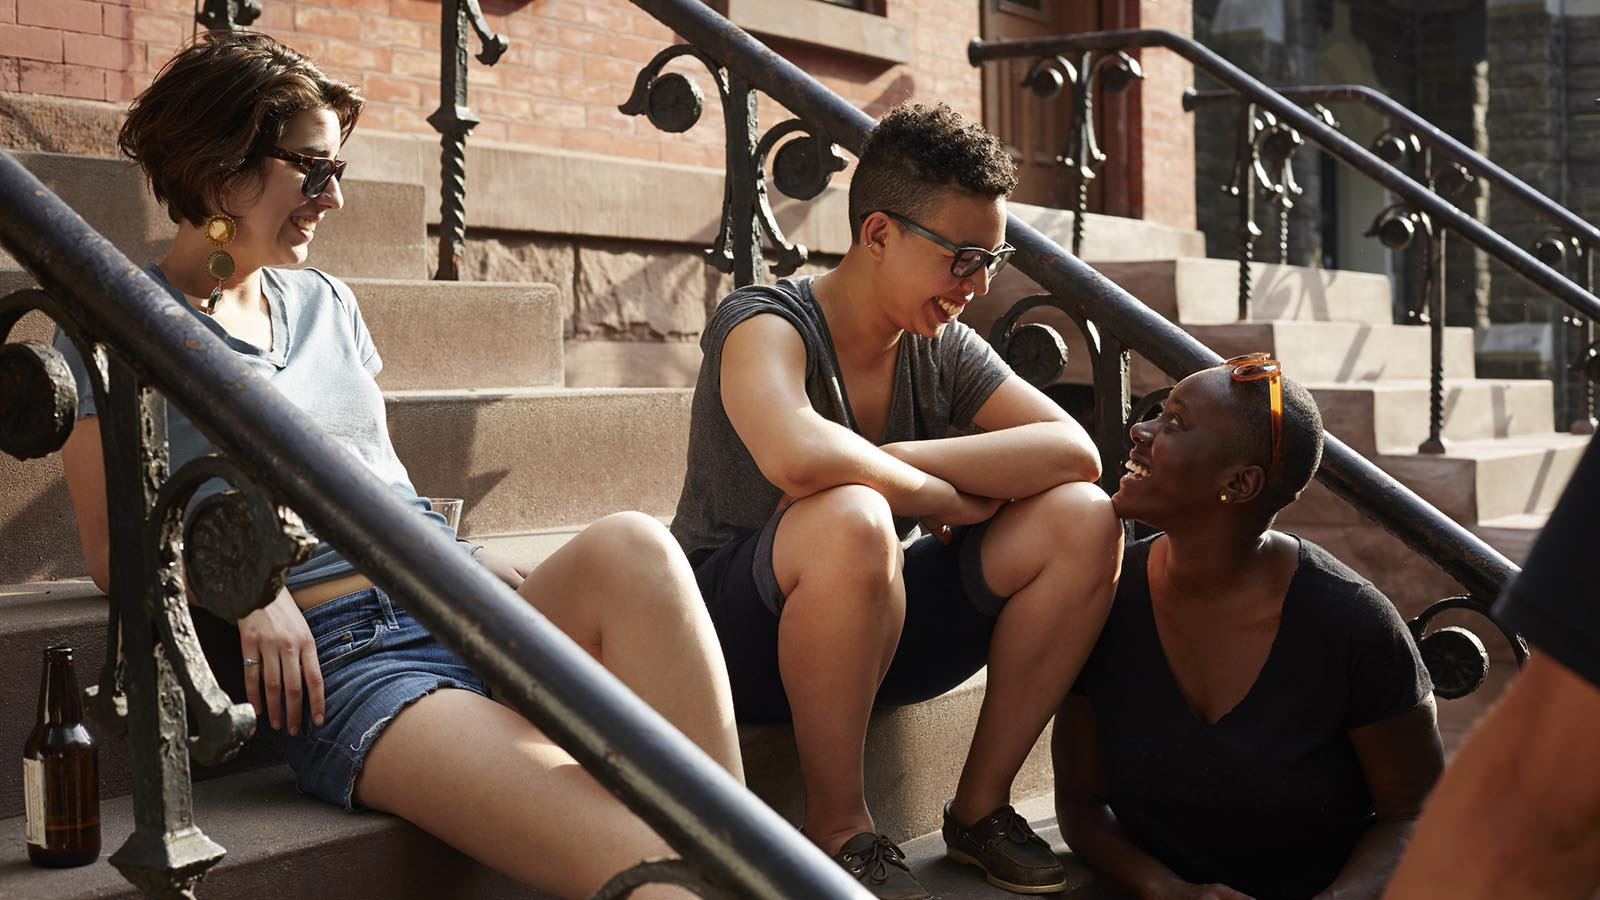 friends on stoop in New York city